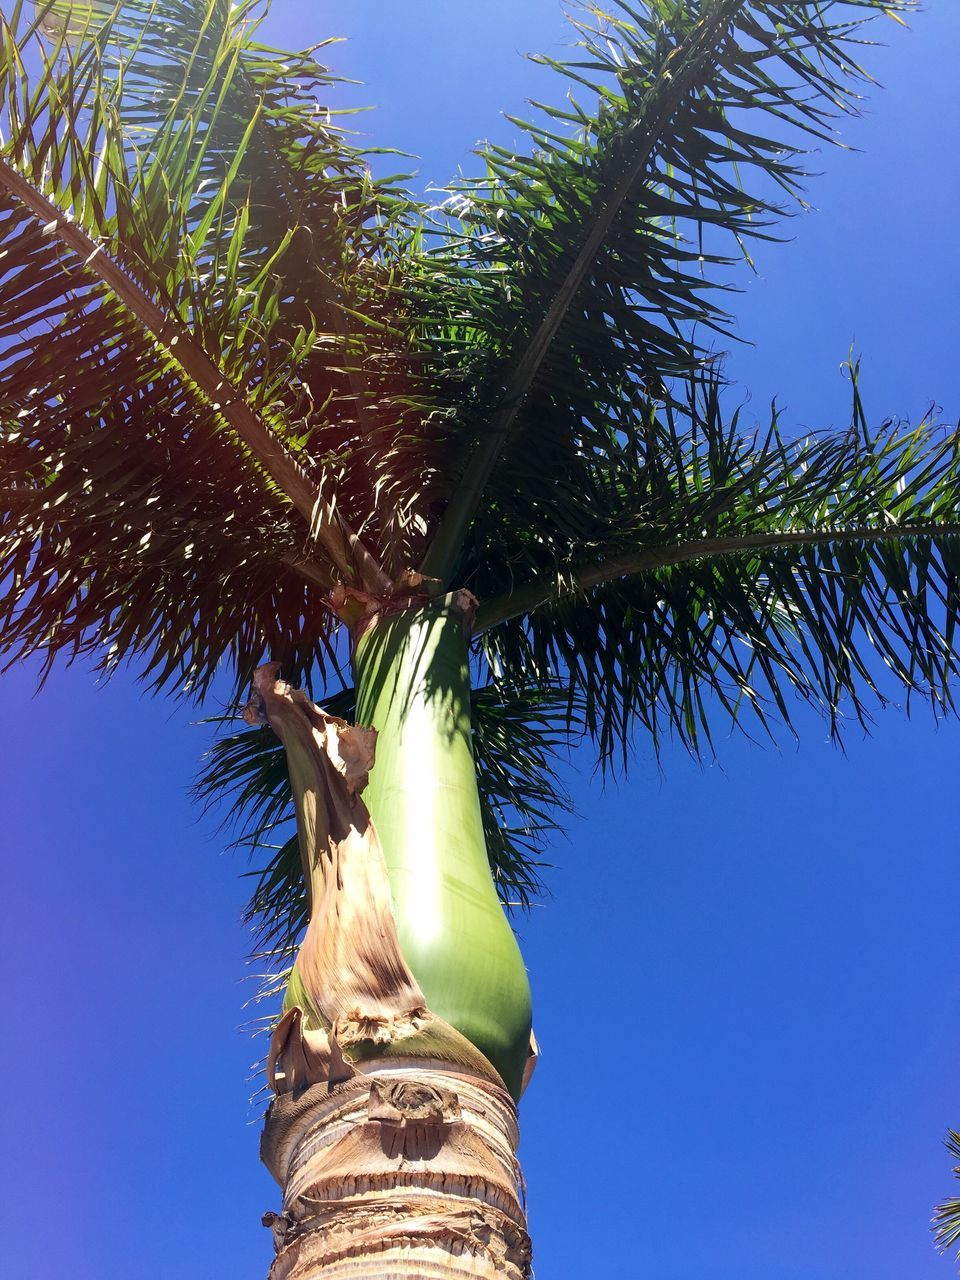 tree, low angle view, blue, growth, statue, day, green color, outdoors, sculpture, palm tree, nature, clear sky, no people, branch, sky, plant, sunlight, tree trunk, beauty in nature, close-up